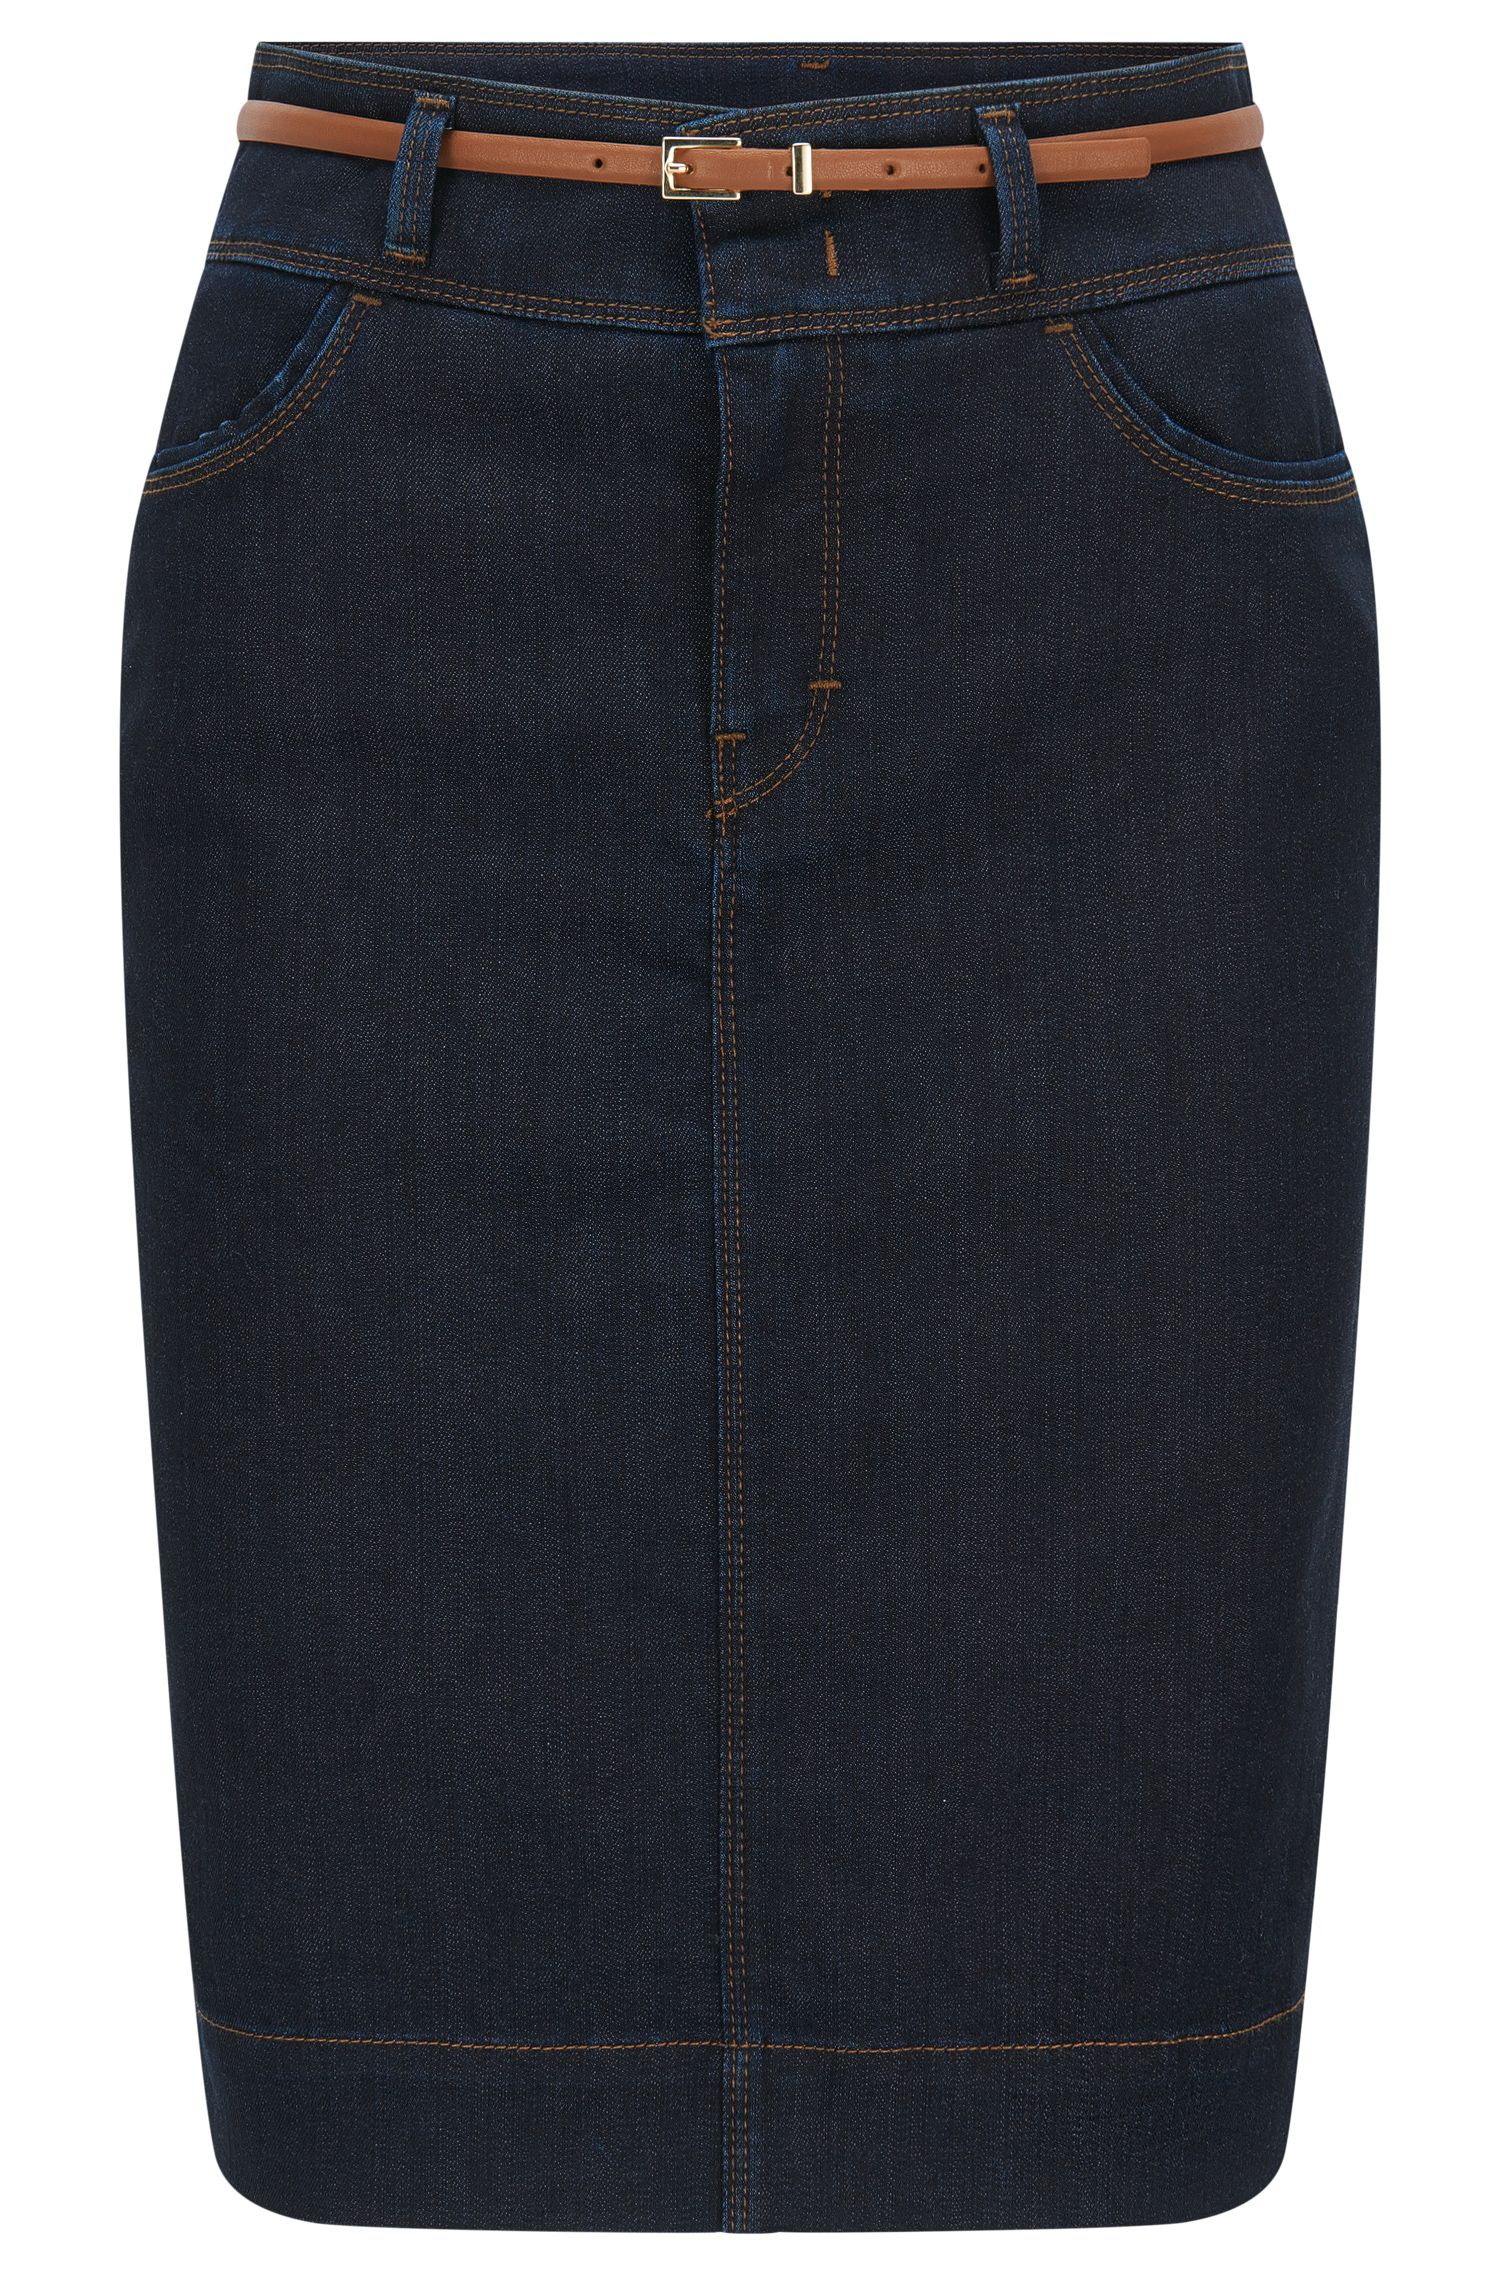 Jeans skirt in stretch cotton blend: 'Nelana SLOW'